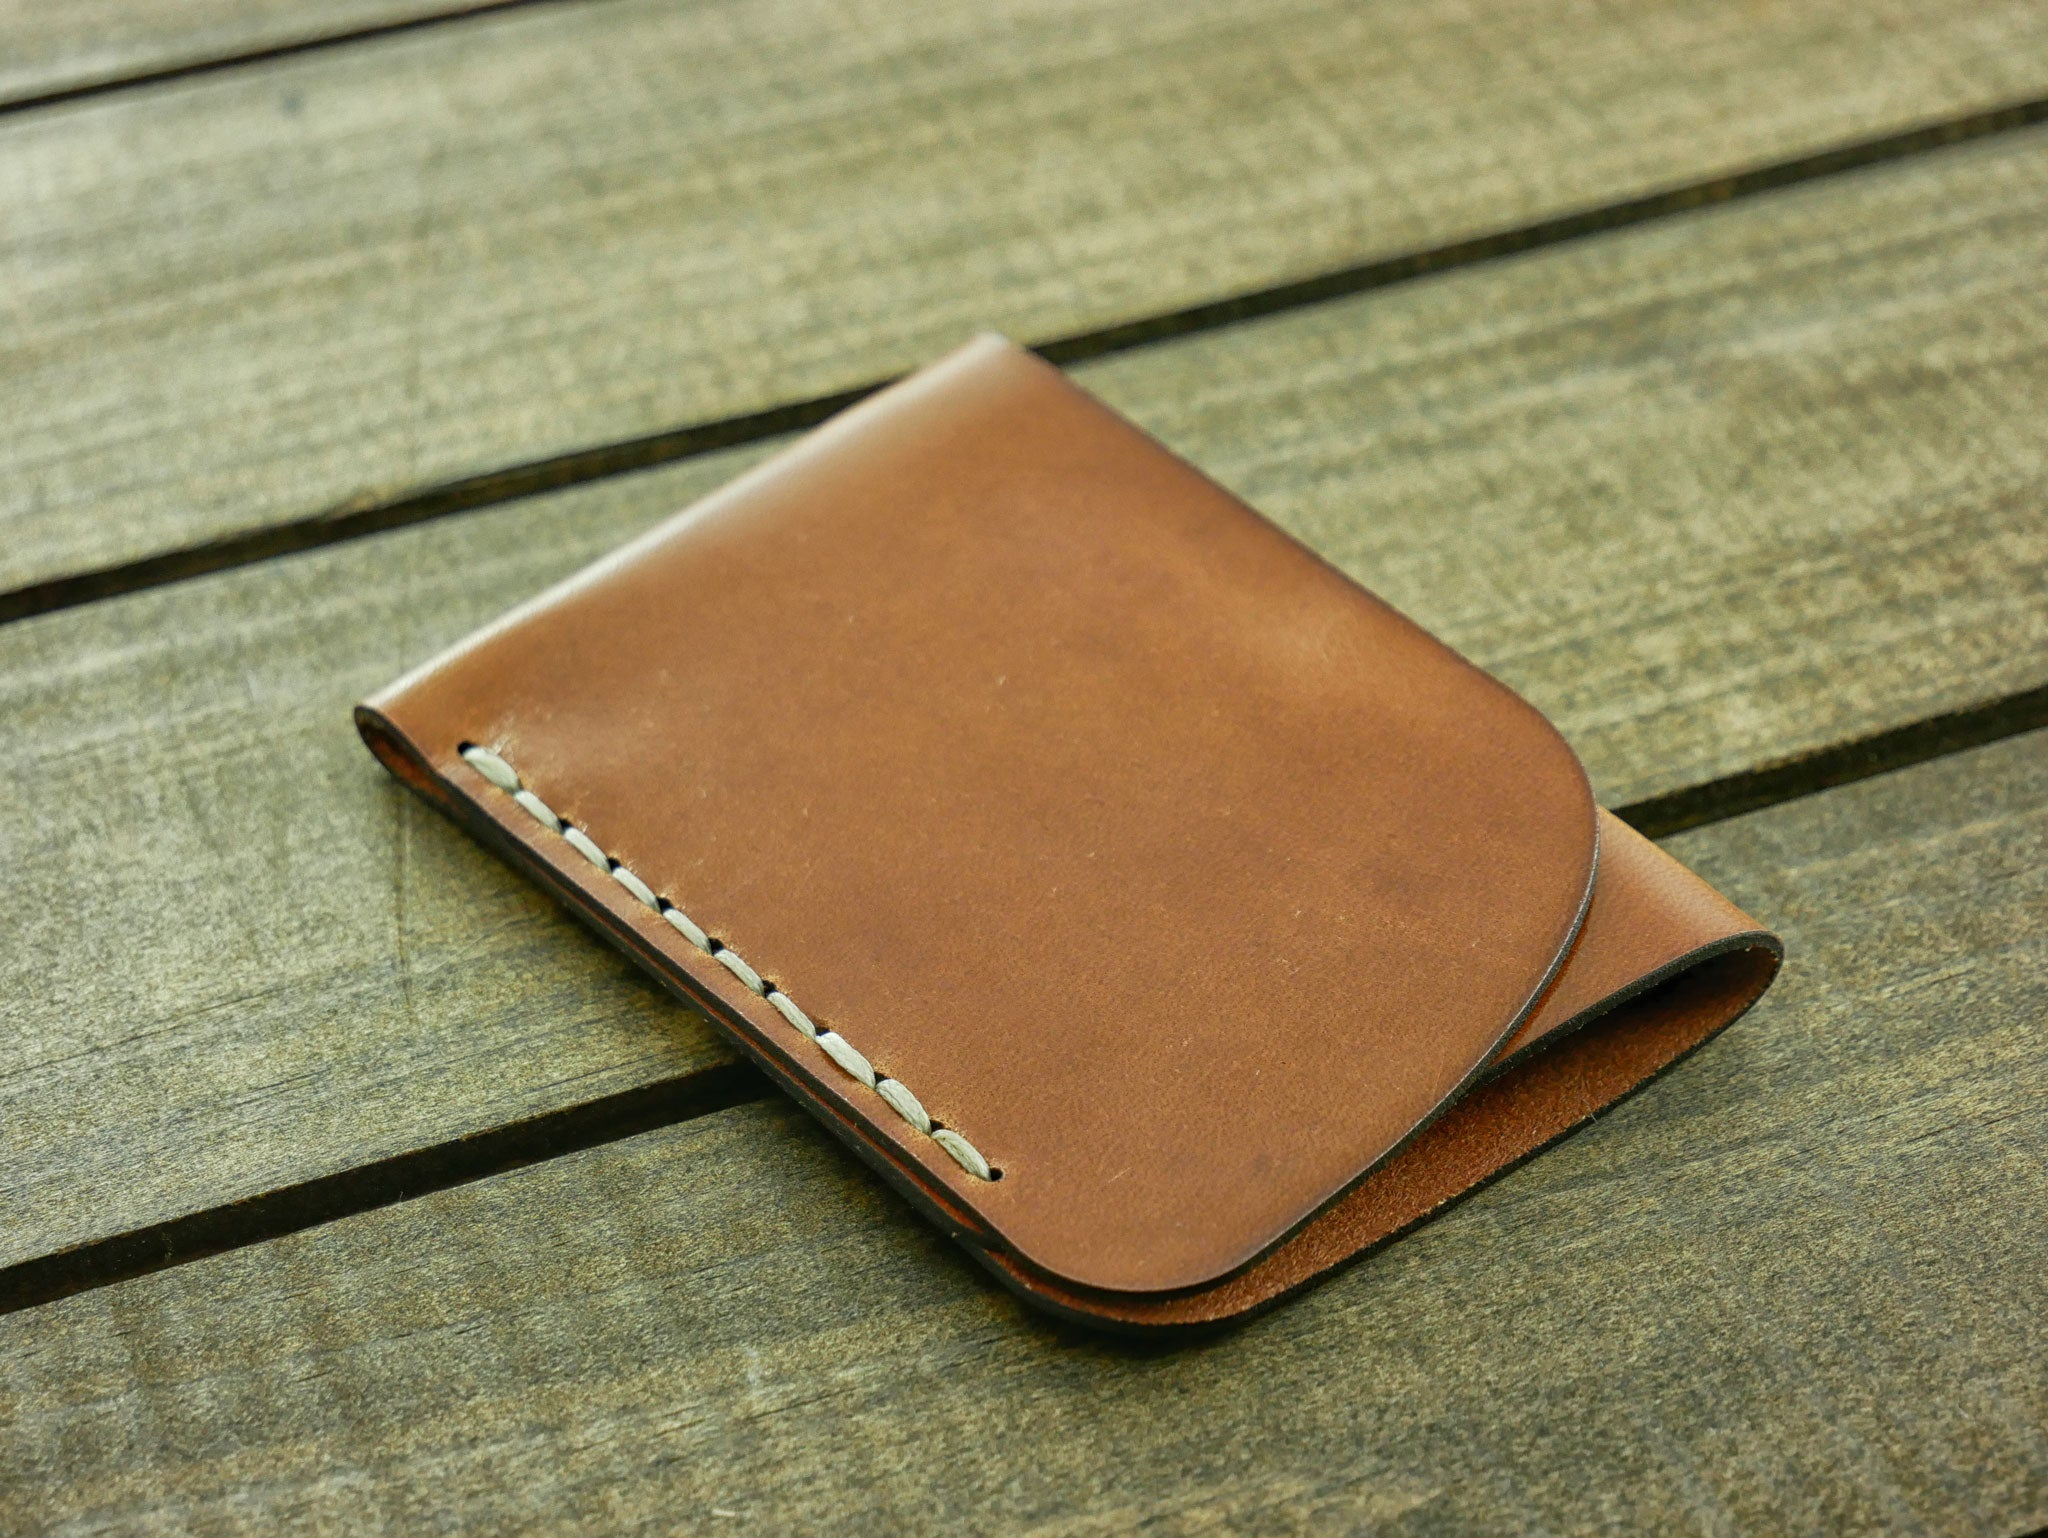 Leather Zip Around Wallet - MINIMALIST by VIDA VIDA Krnz9